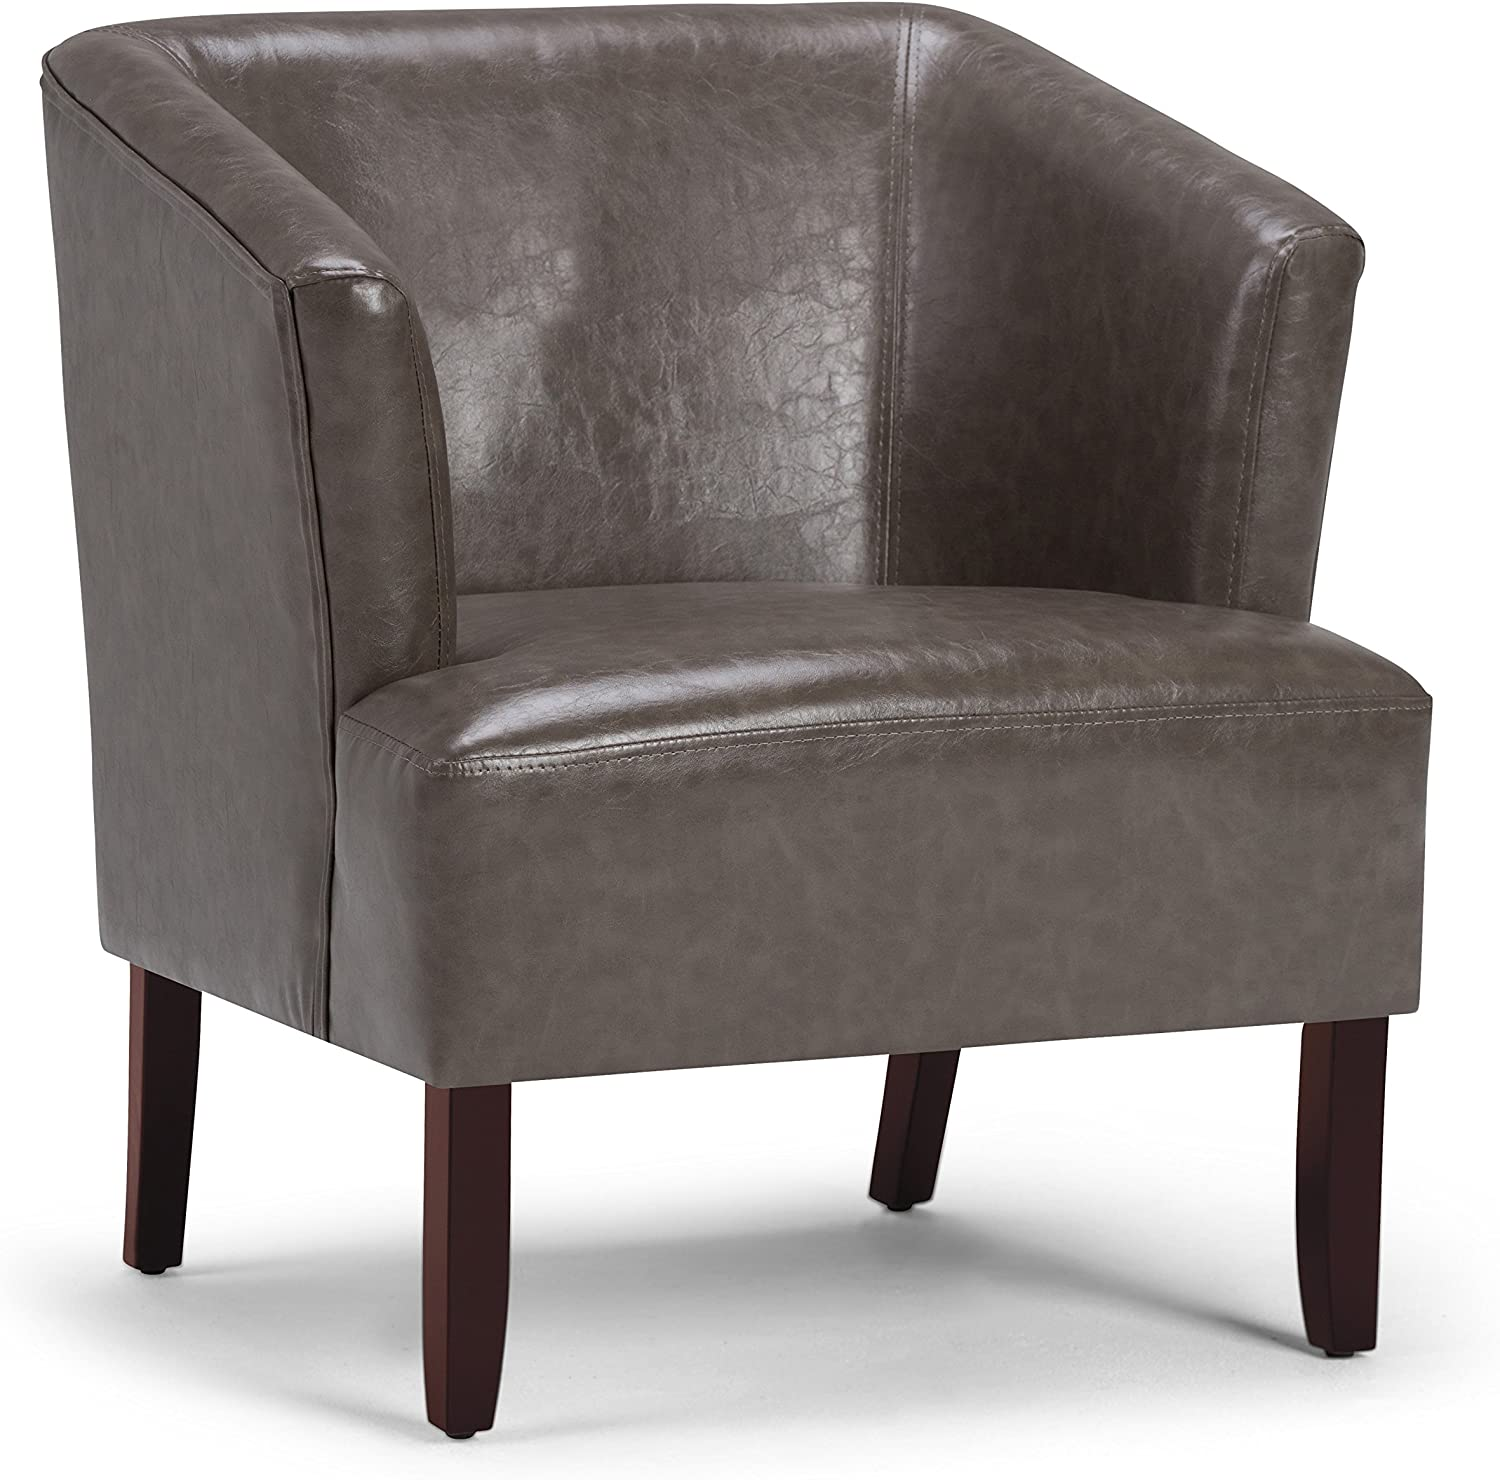 Simpli Home AXCTUB-005-EG Longford 29 inch Wide Mid Century Modern Tub Chair in Elephant Grey Bonded Leather